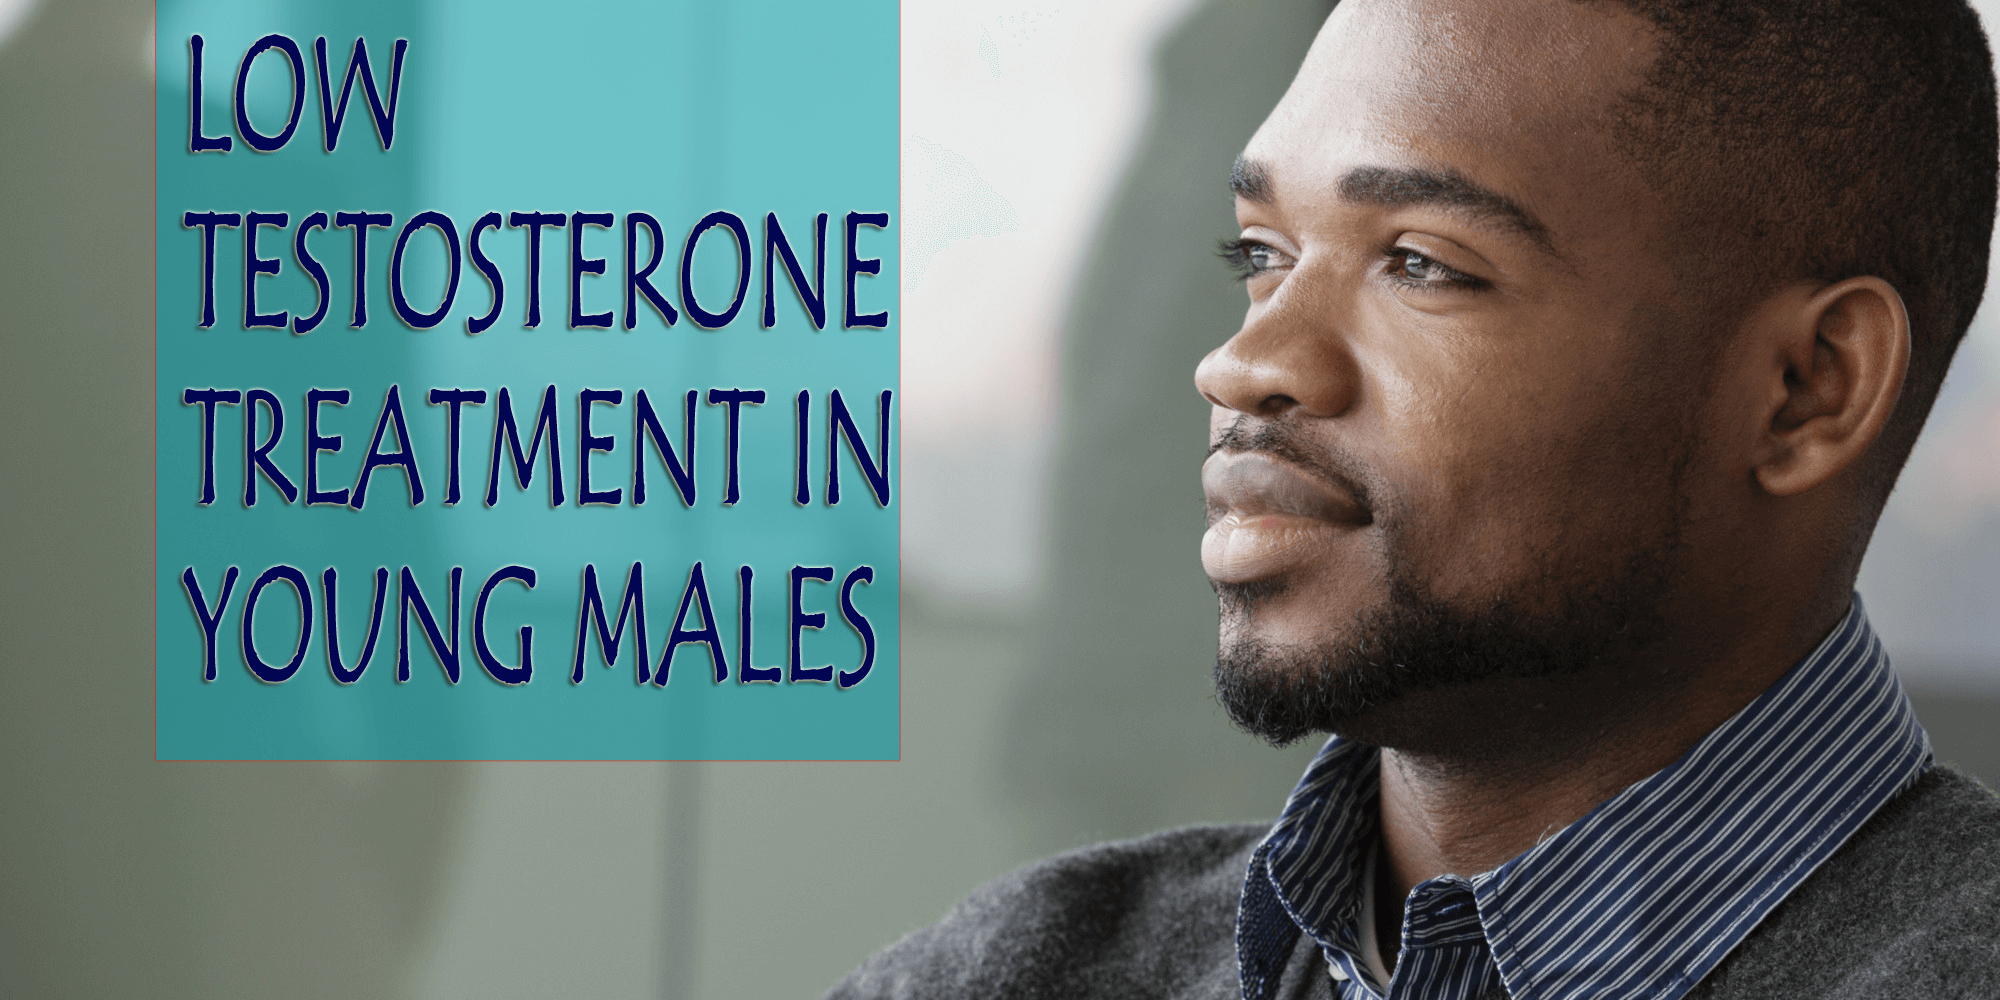 Low Testosterone Treatment in Young Males